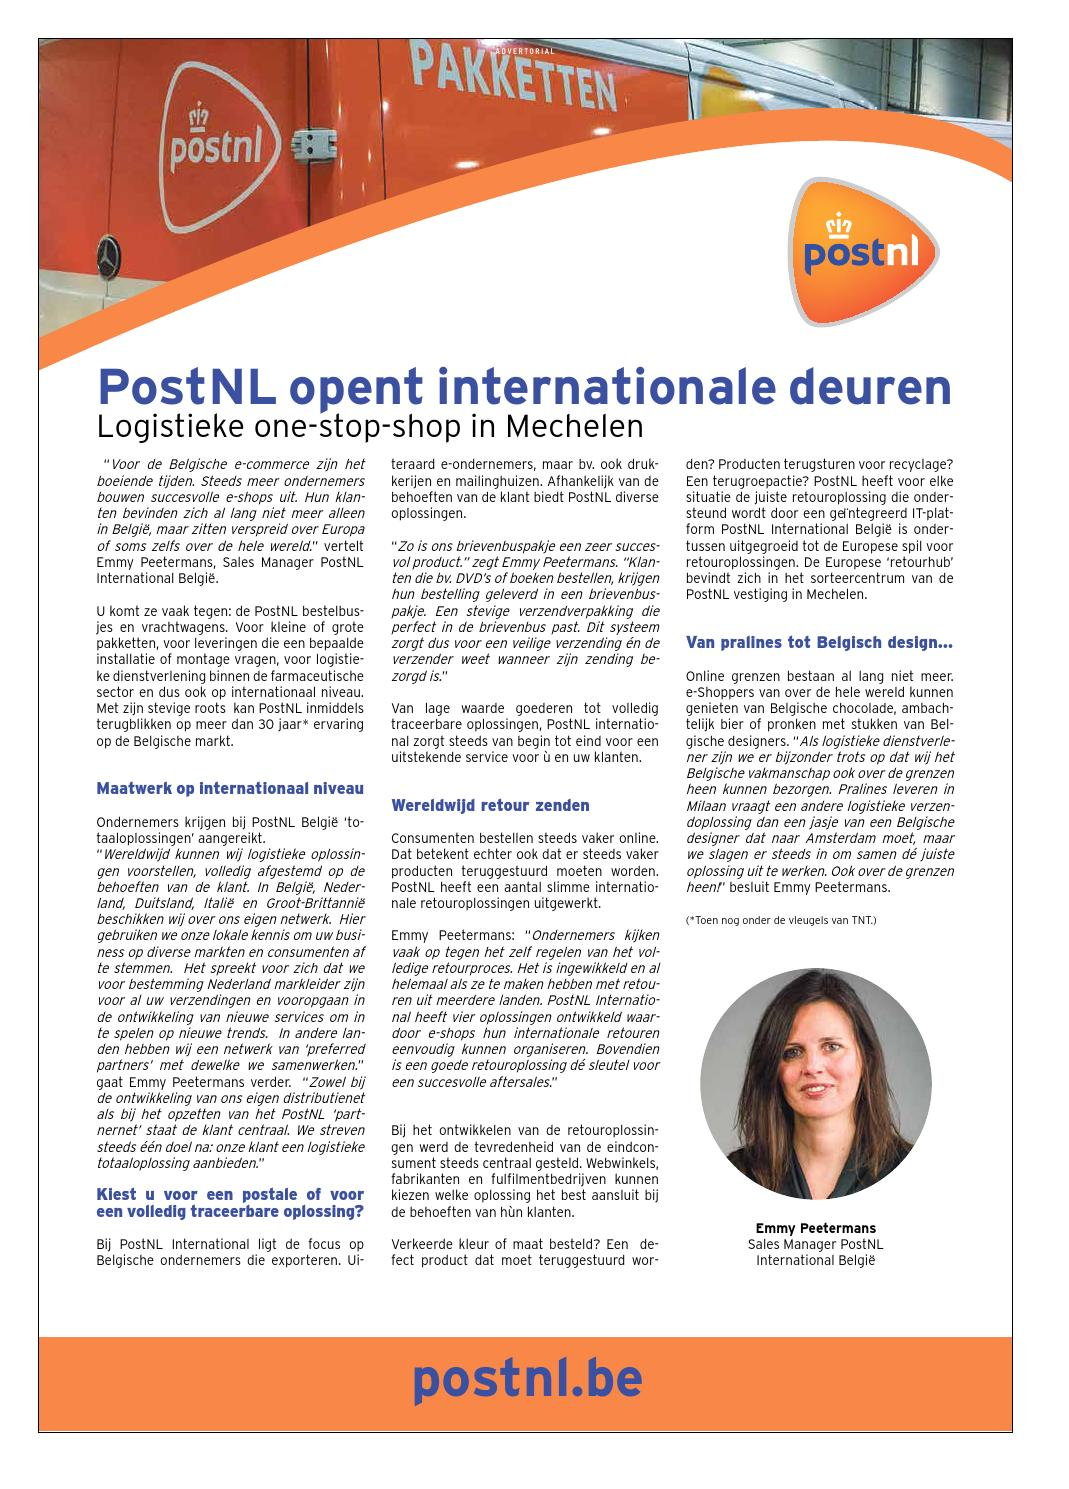 Brievenbuspakje Postnl Fokus International Business